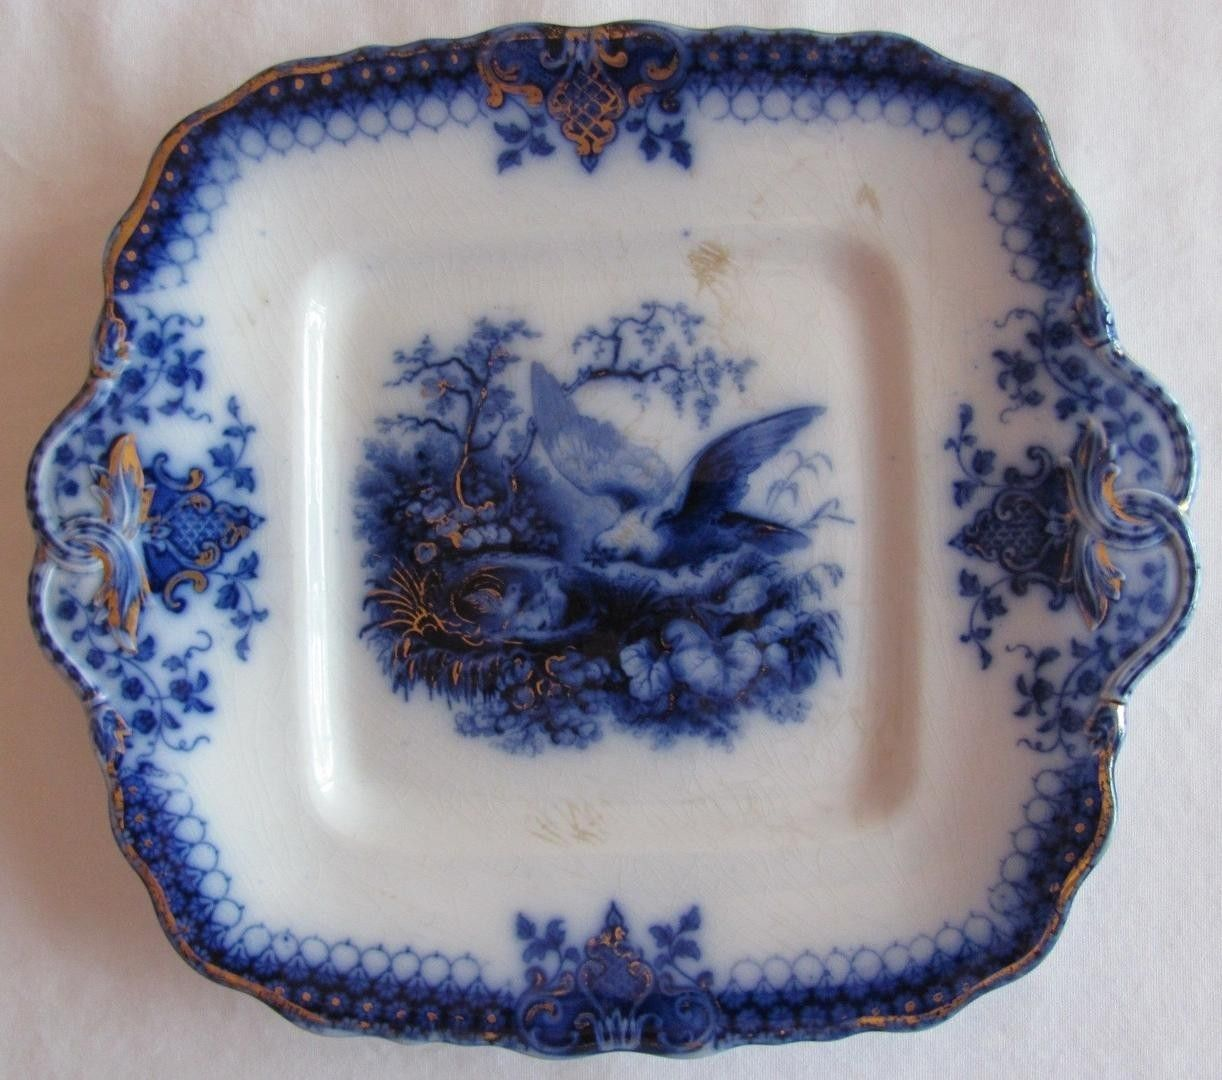 Flow Blue Square Plate India Pattern Vu0026B Villeroy and Boch c.1800u0027s (A) | #1832634184 & Flow Blue Square Plate India Pattern Vu0026B Villeroy and Boch c.1800u0027s ...